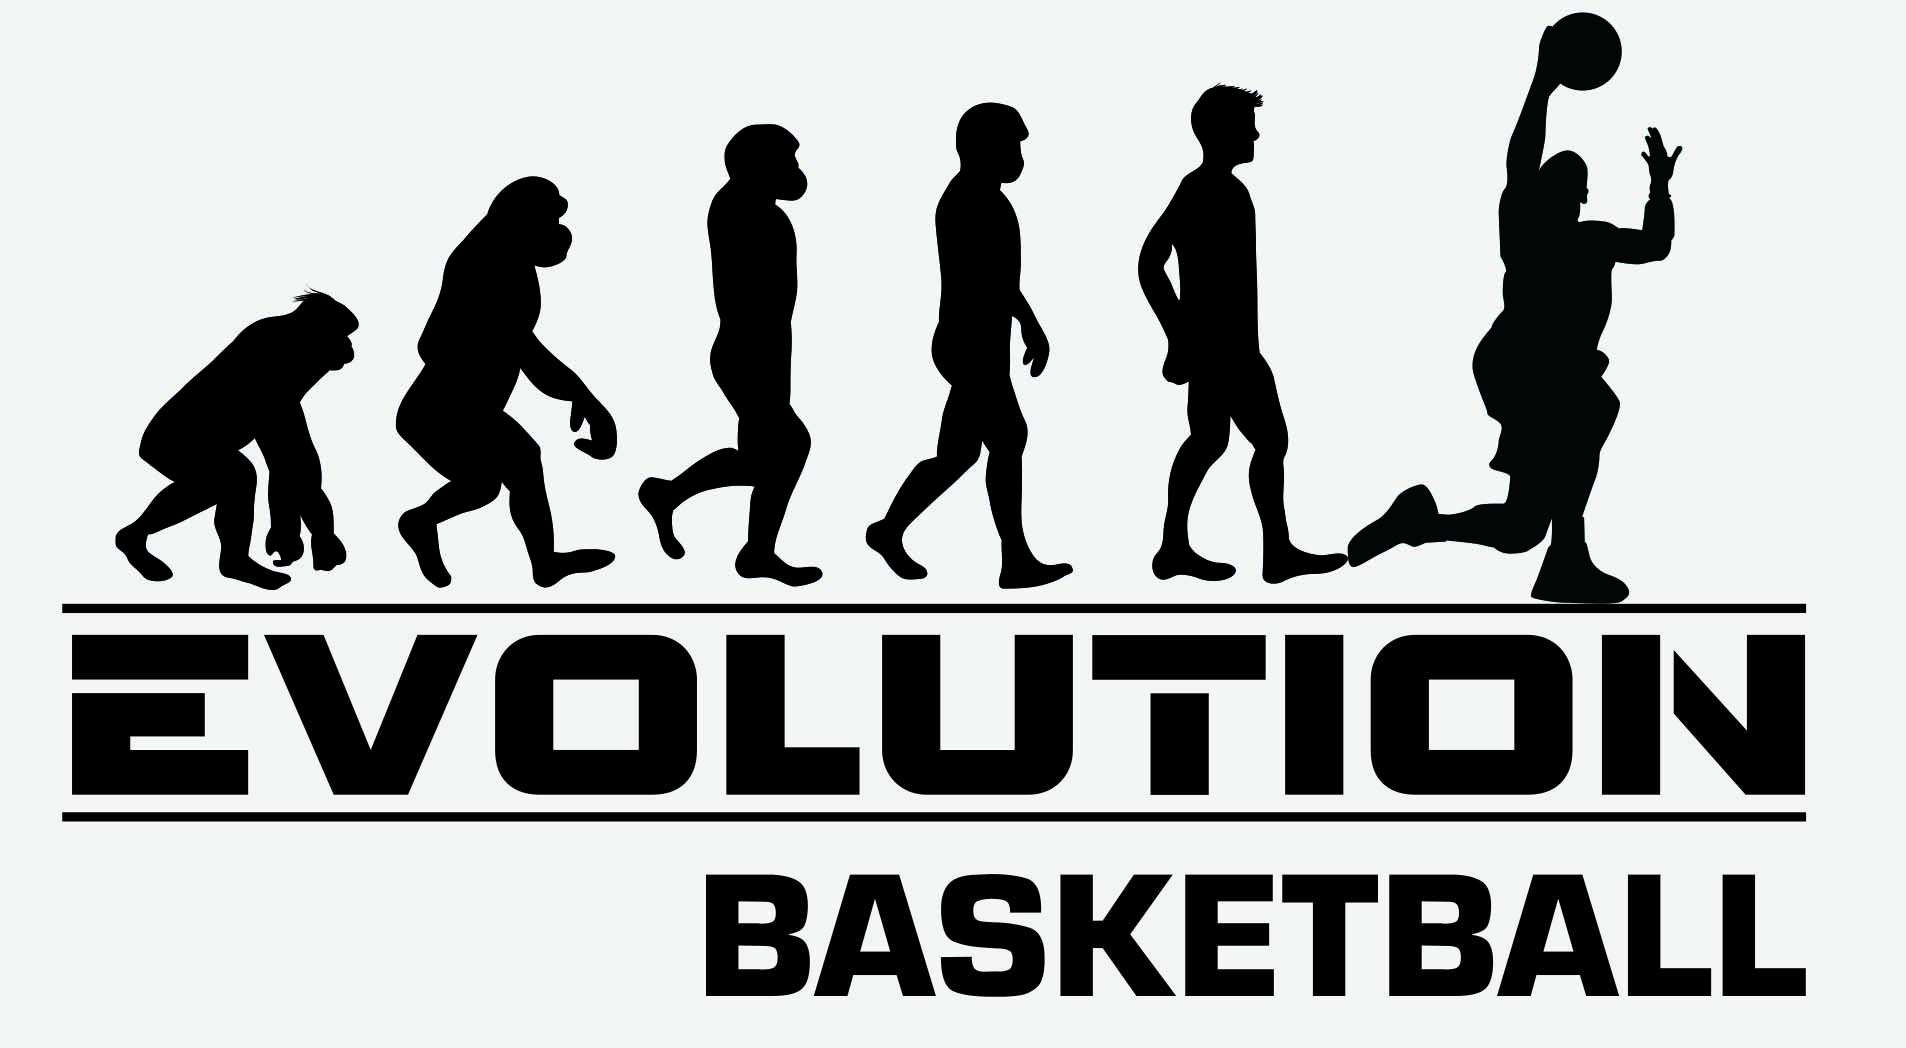 EVOLUTION BASKETBAL